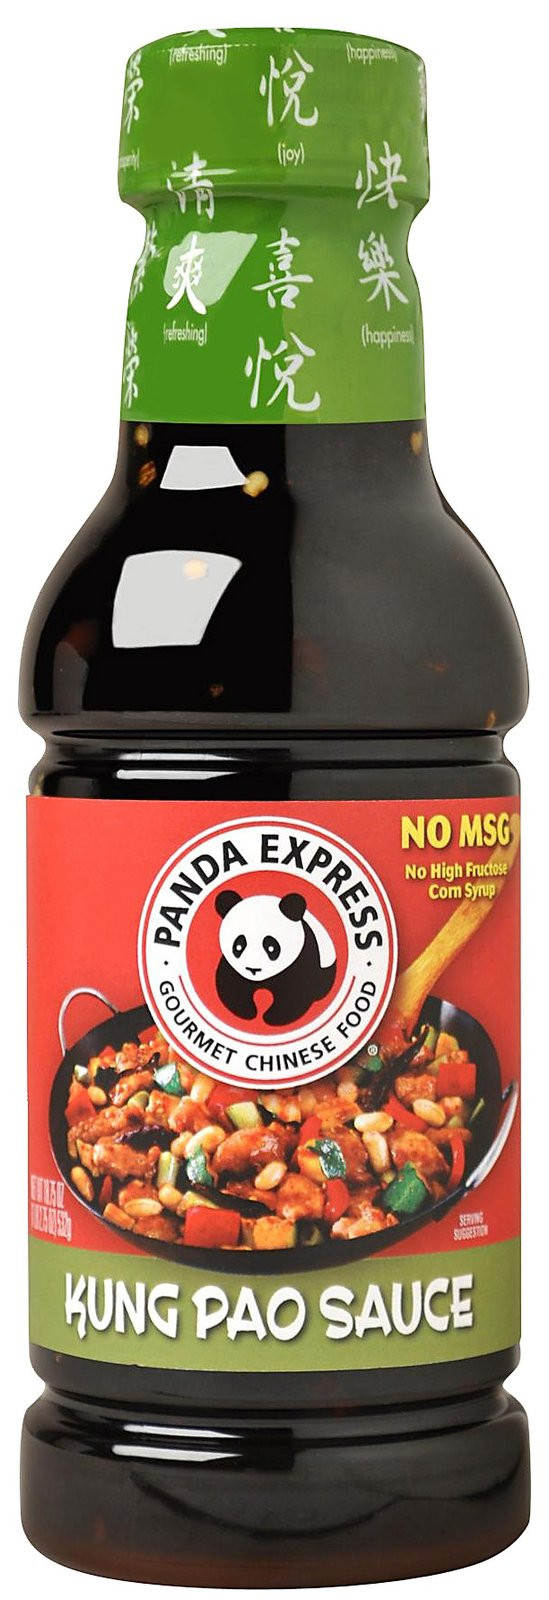 Panda Express Sauces  Life of a Foo and Her Family Kung Pao Chicken with